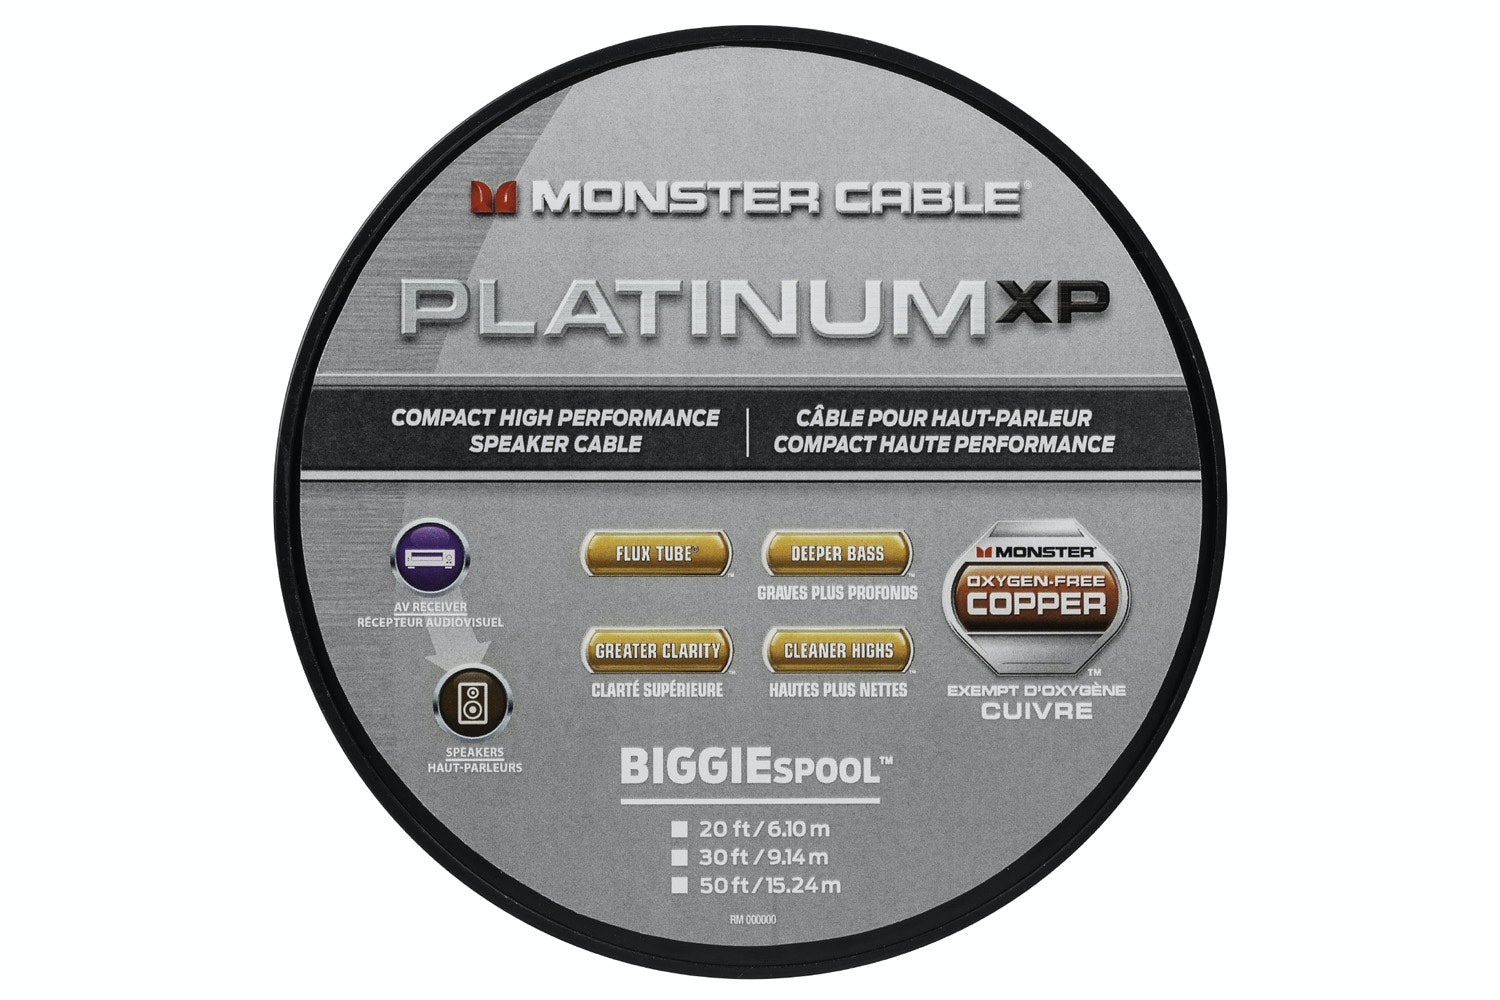 Monster Platinum XP Clear Jacket MKIII 50' Compact Speaker Cable